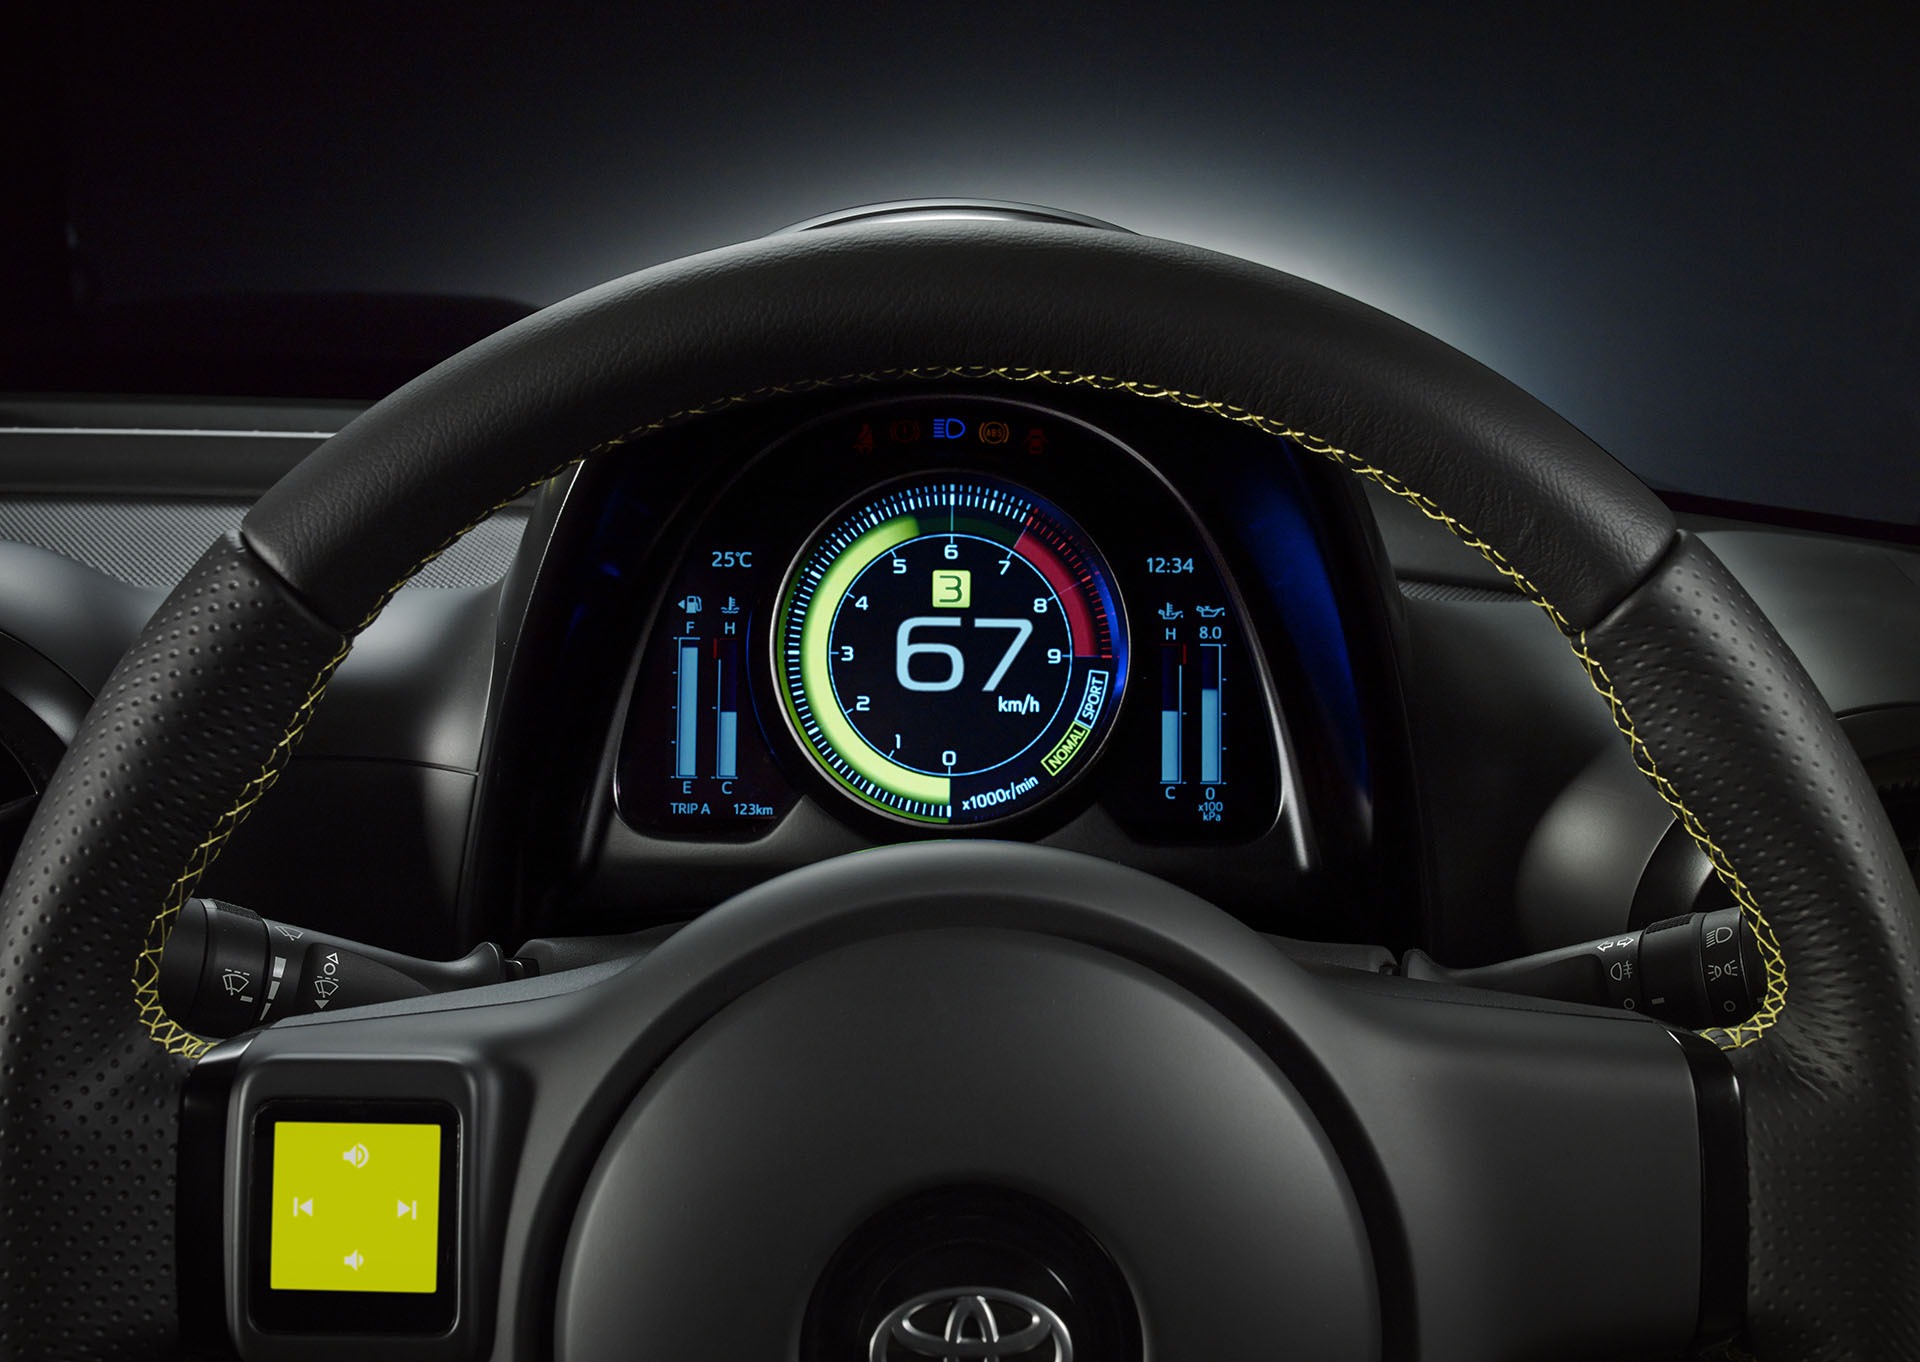 Toyota S Fr Concept Specs Leaked The News Wheel